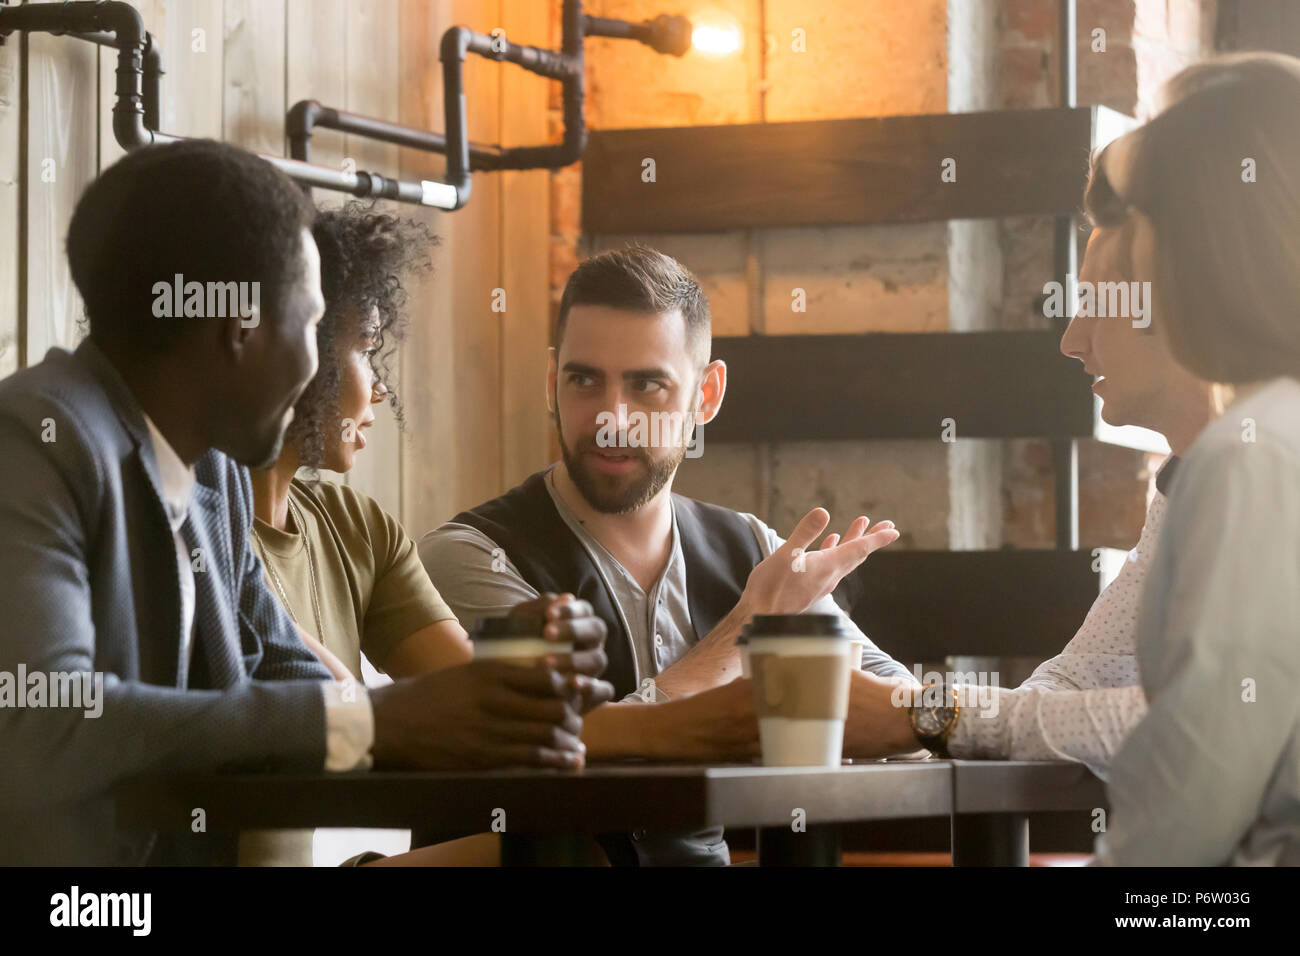 Multiracial colleagues discussing ideas during work break in caf - Stock Image